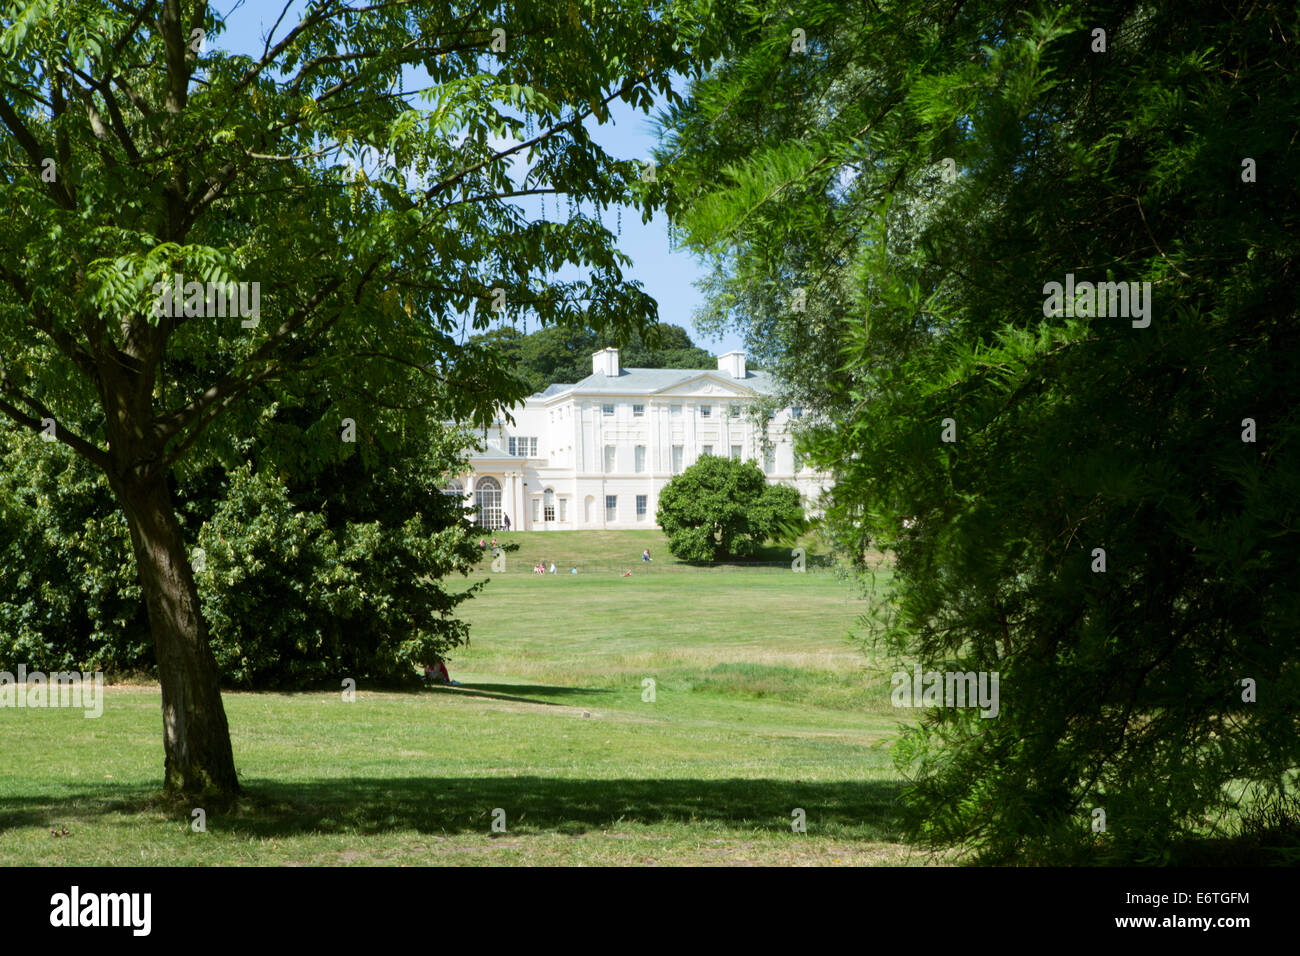 The south front of Kenwood by Robert and James Adam, on Hampstead Heath, a park in north London - Stock Image